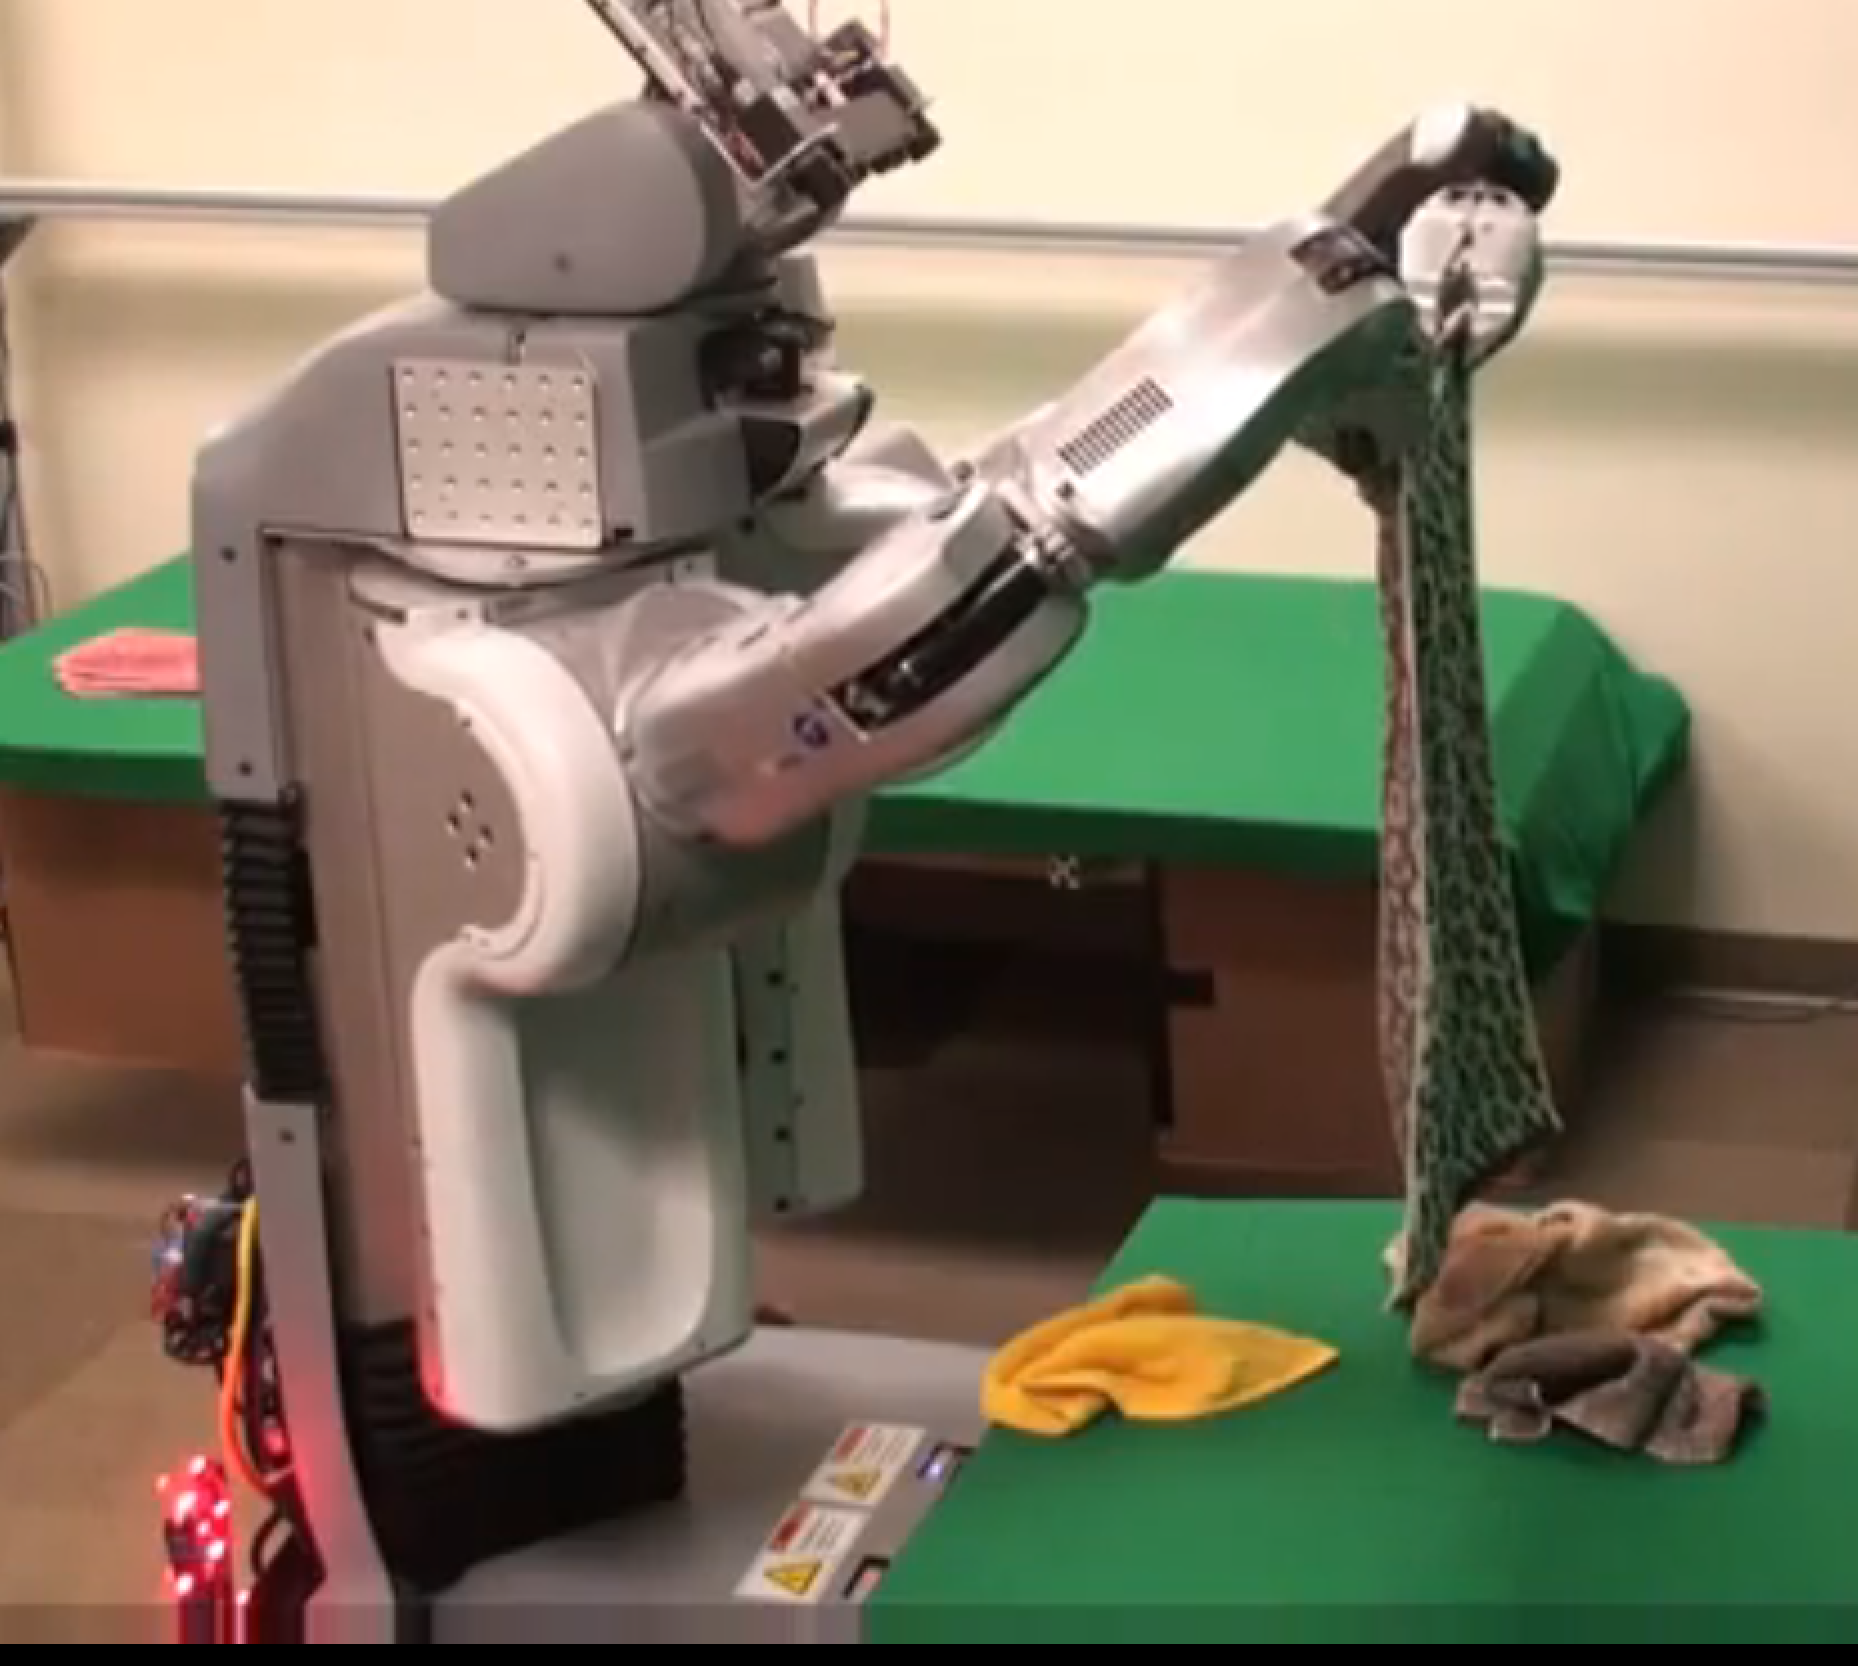 Robot folds clothes - seriously